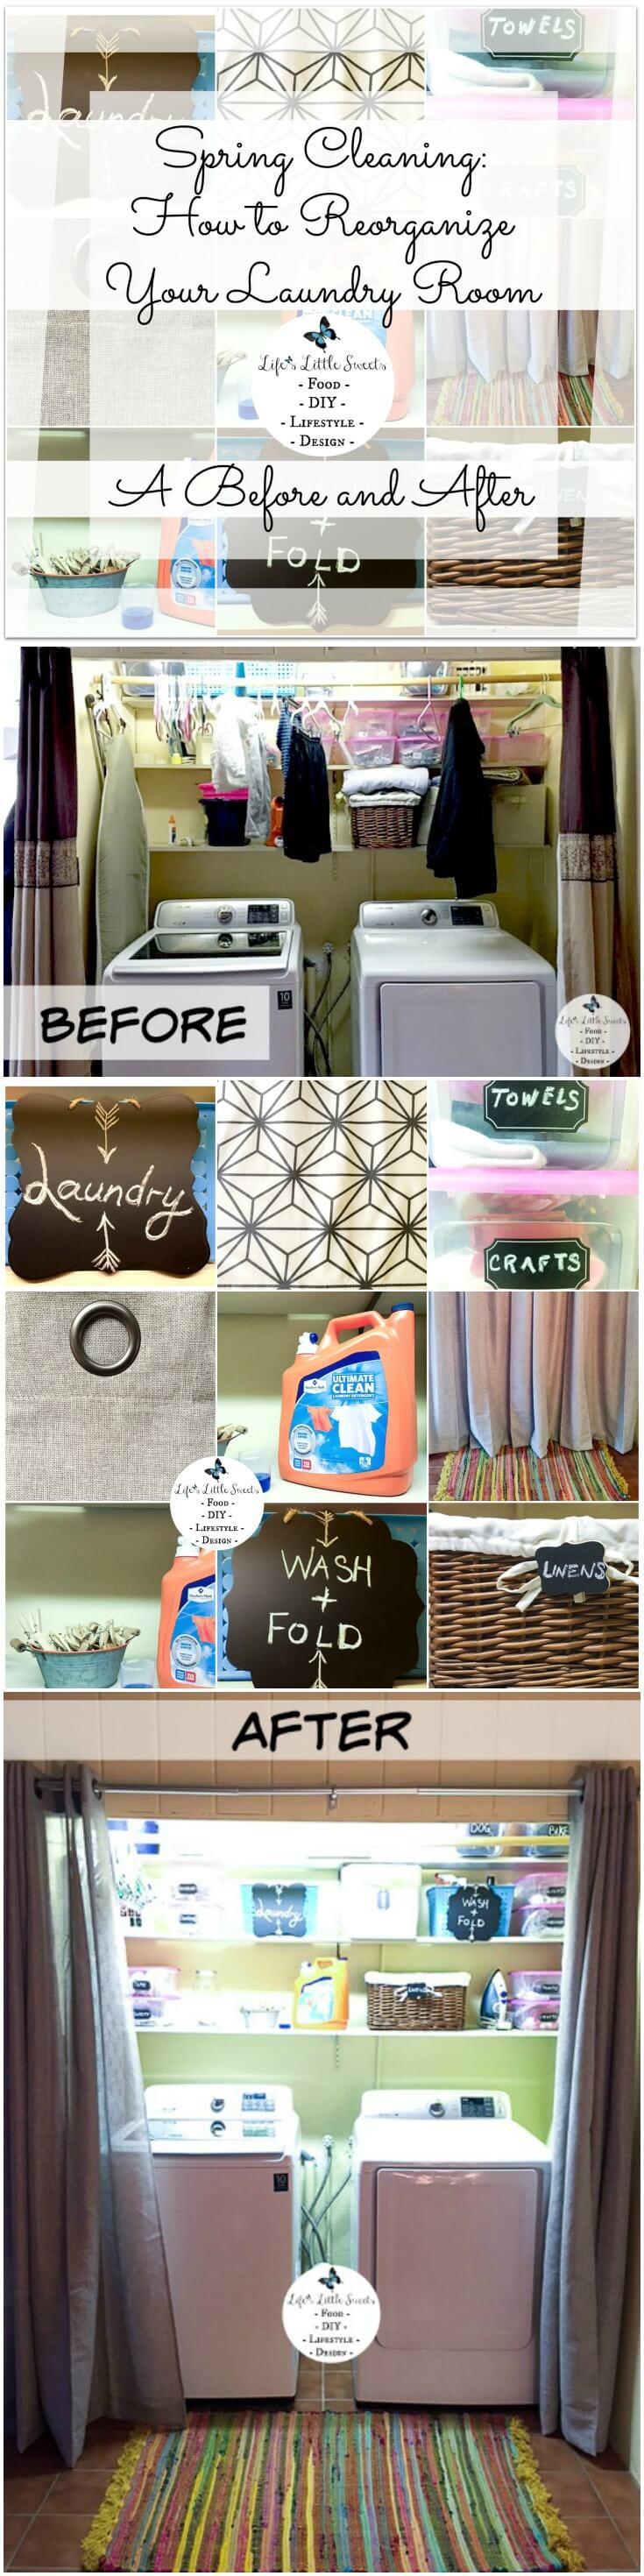 Spring Cleaning: How to Reorganize Your Laundry Room - A Before and After-Have you done your Spring cleaning yet? March 20th is the first day of Spring and with it, we will cast away the winter woes of colds, lethargy and dark skies. Spring cleaning is a pro-active way of changing your environment in a positive way. Here are 3 easy steps on exactly how to do that and 6 ways of styling with a case study: my laundry closet! #ad #TryMembersMark #CollectiveBias